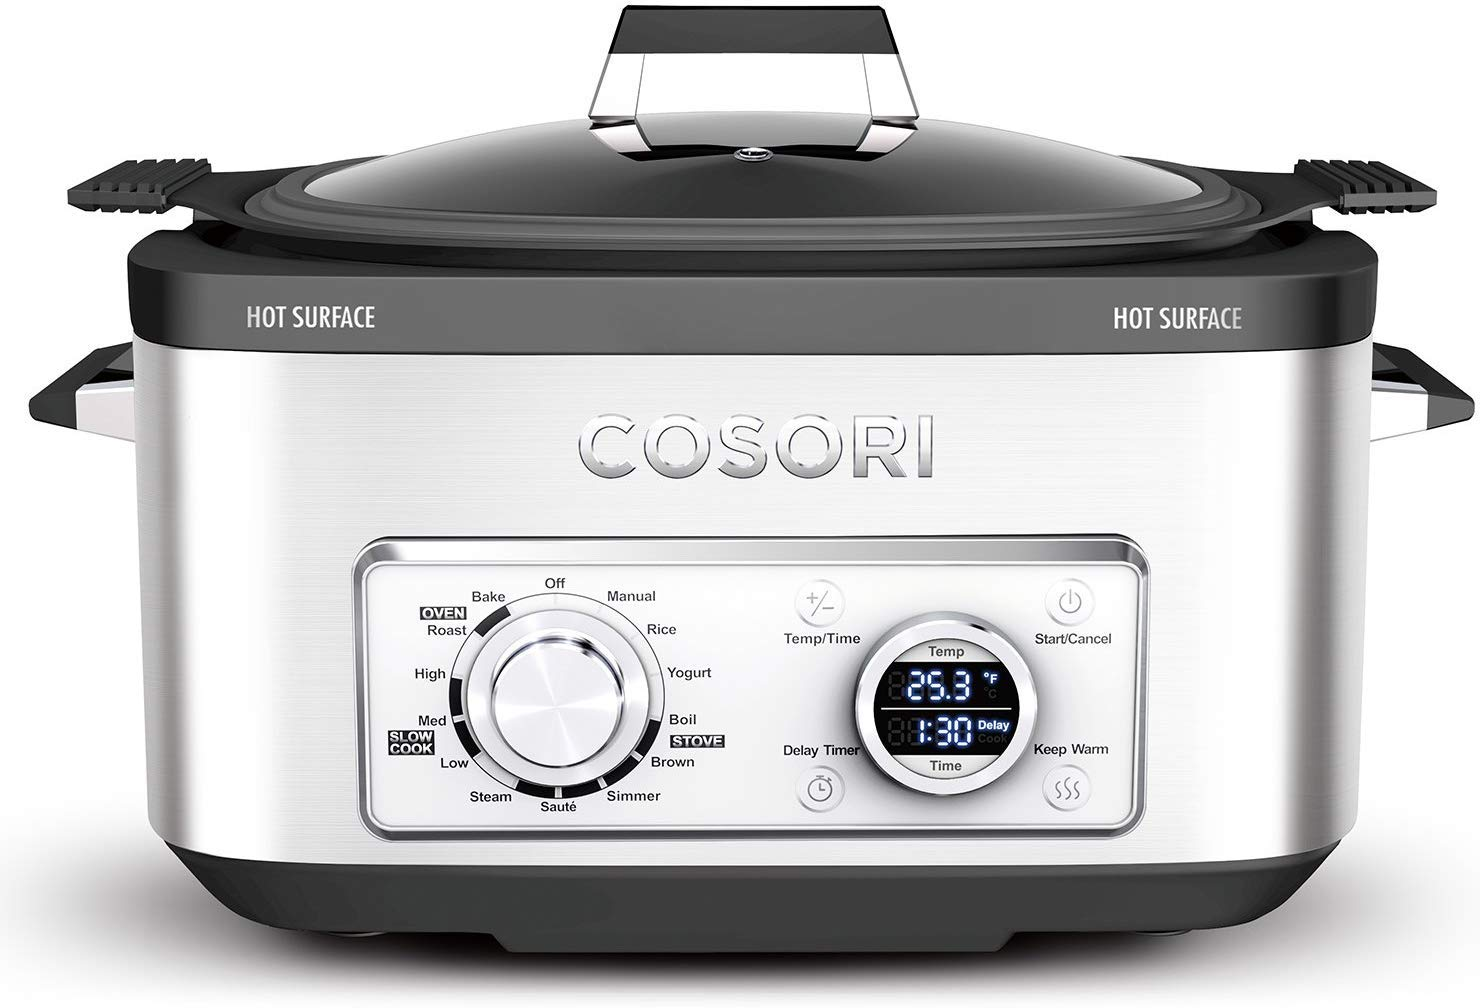 COSORI Slow Cooker 6-Quart 11-in-1 Programmable Multi-Cooker Pot, Rice Cooker, Brown, Saute, Boil, Steamer, Yogurt Maker, Auto-Warmer, Delay Timer,86°F-400°F,2-Year Warranty,UL Listed/FDA Compliant